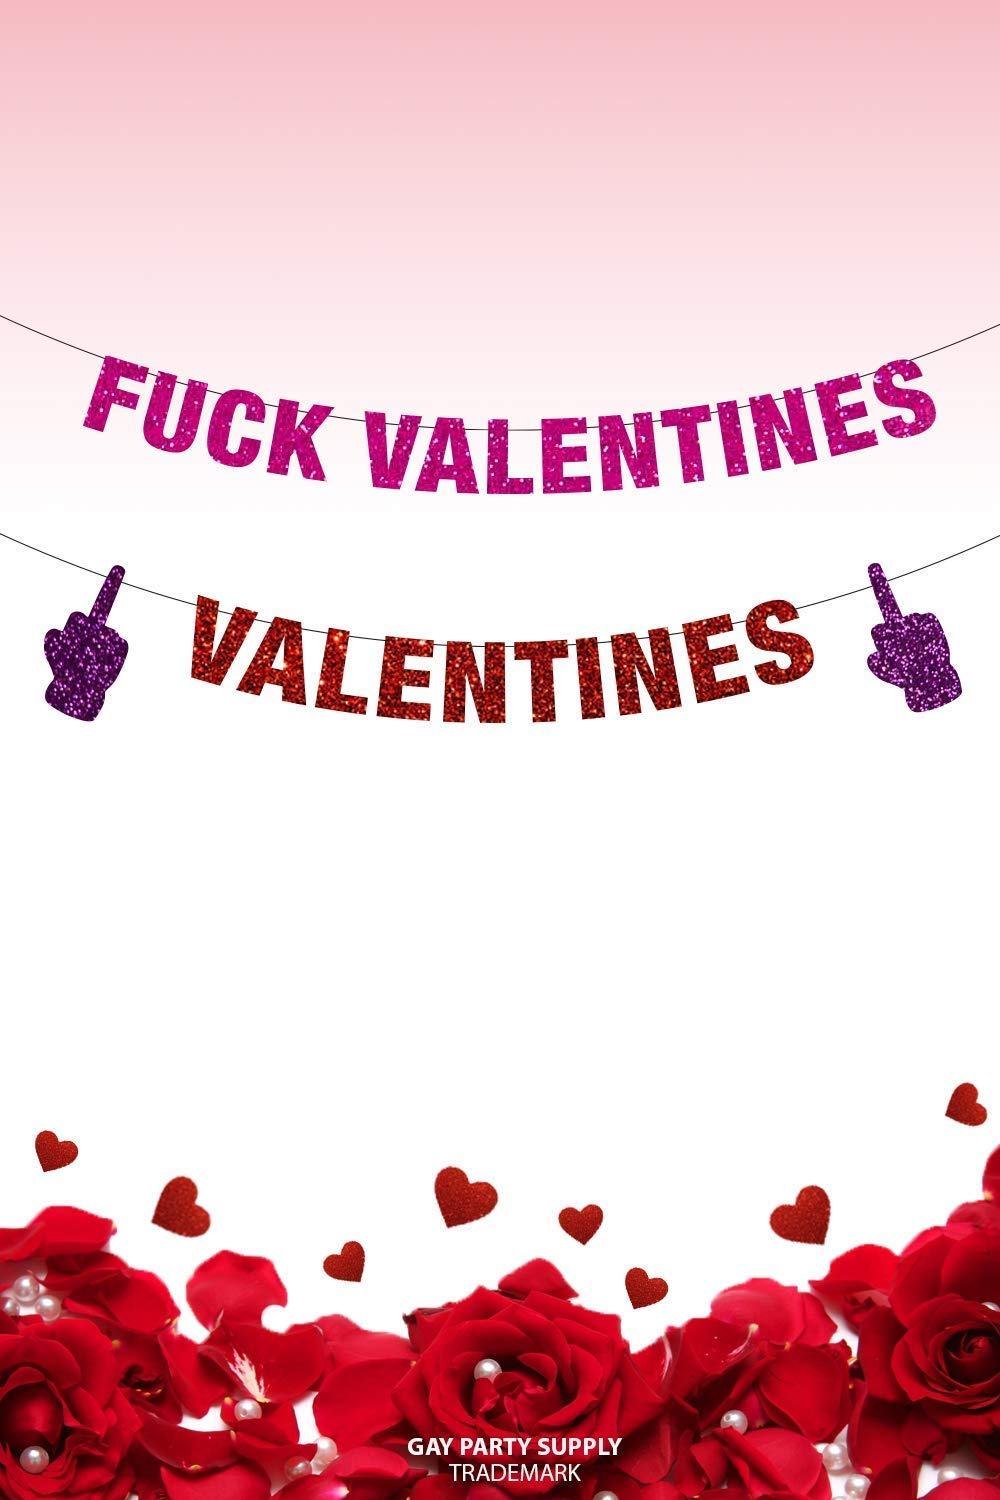 Fuck Valentine's Day Banner, Fuck Valentine's, Anti Valentines Day, Anti Valentine, Love Stinks, Funny Valentines Day Decor